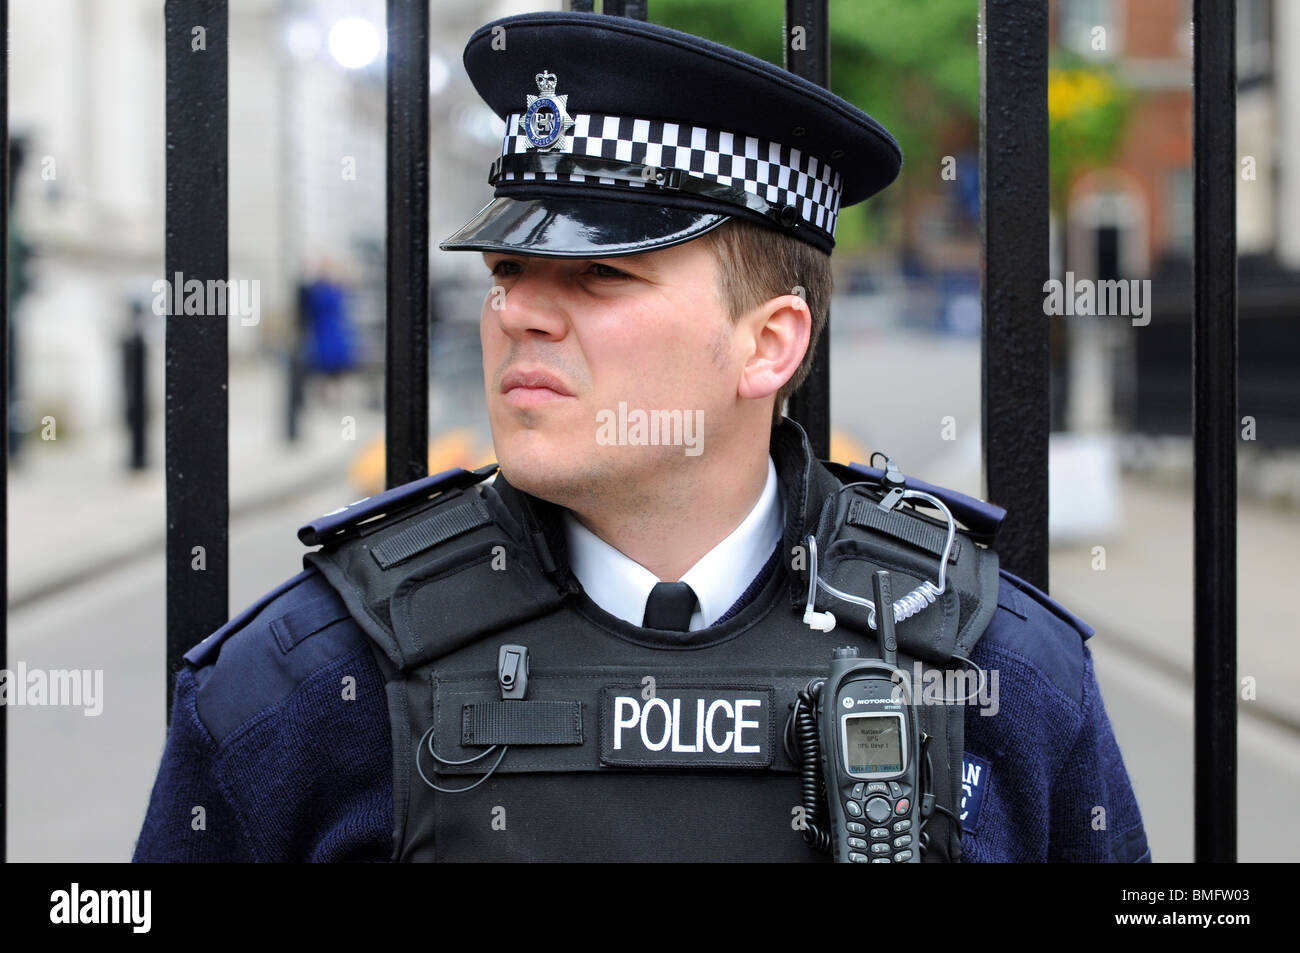 how to become a police officer uk london